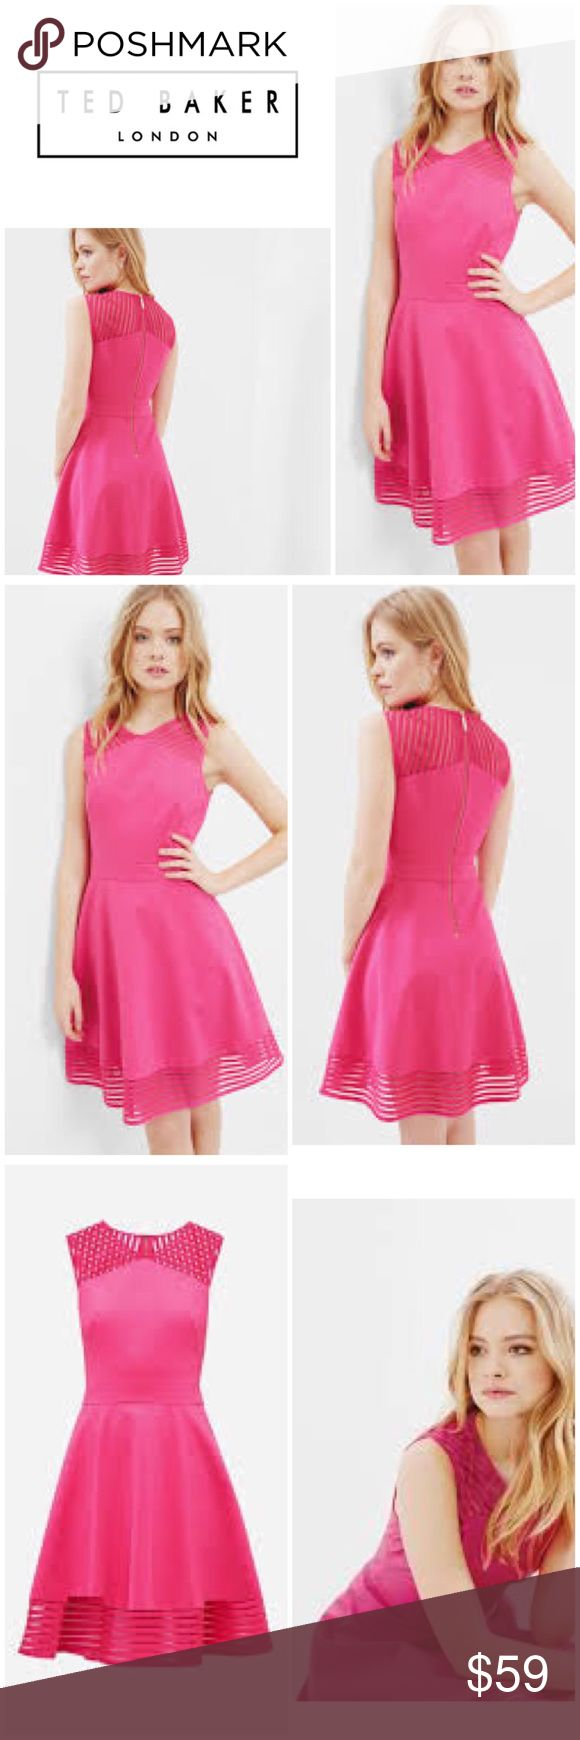 """New Ted Baker Eleese Mesh Skater Dress New with tags, Gorgeous! Ted Baker Fuchsia Mesh Skater Fit & Flare Dress.   Ted Baker Size 5 US Size 12 Bust: 41"""" Waist: 34"""" Hips: 44"""" Stretch   ————————————————  Originally bought for a client from Nordstrom's outlet store Last Chance. Never worn, doesn't have Ted Baker Tags, has the Nordstrom outlet tags.  I'm currently cleaning out my client closets. Open to offers on bundles. 15% off bundles of 3+!   Free gift with every purchase…"""